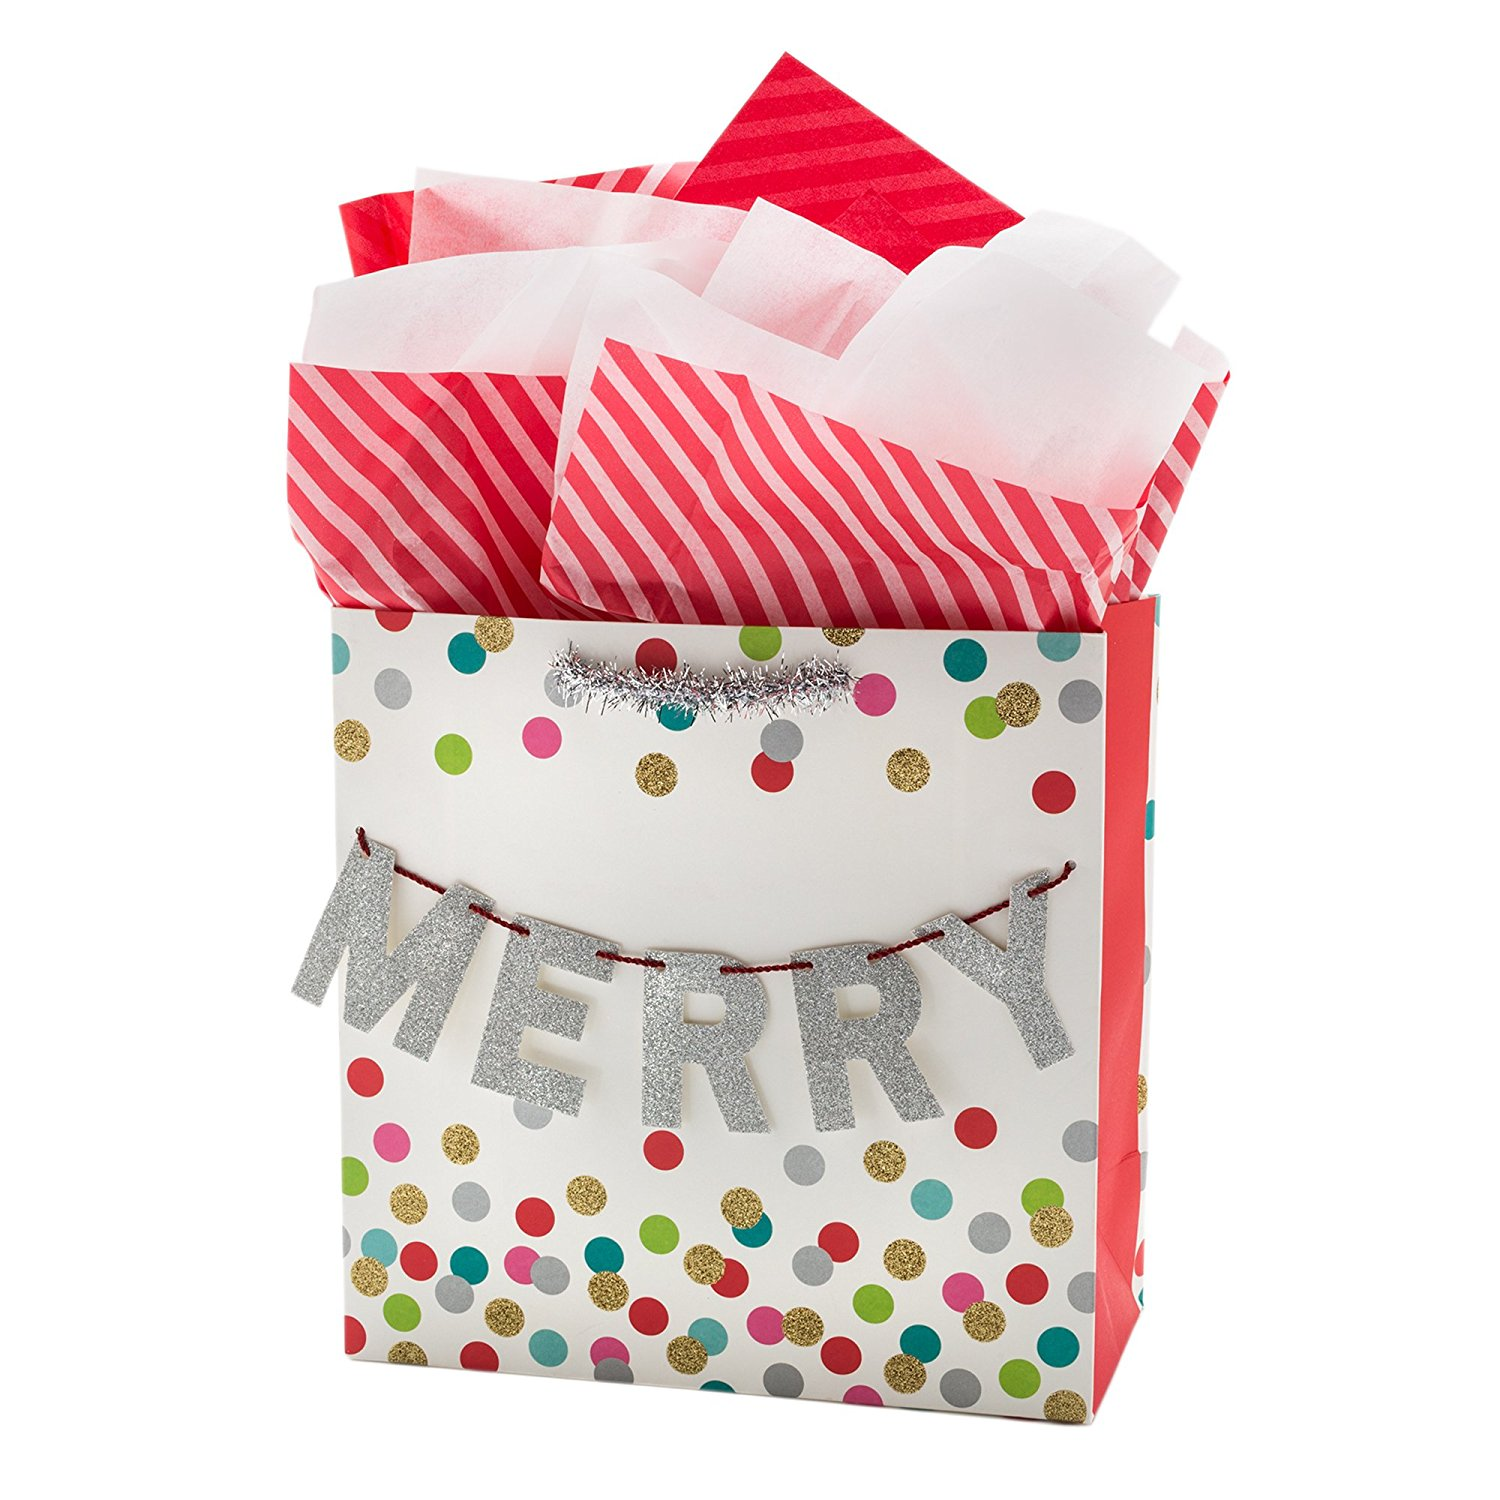 save on hallmark gift wrap bags and bows. Black Bedroom Furniture Sets. Home Design Ideas